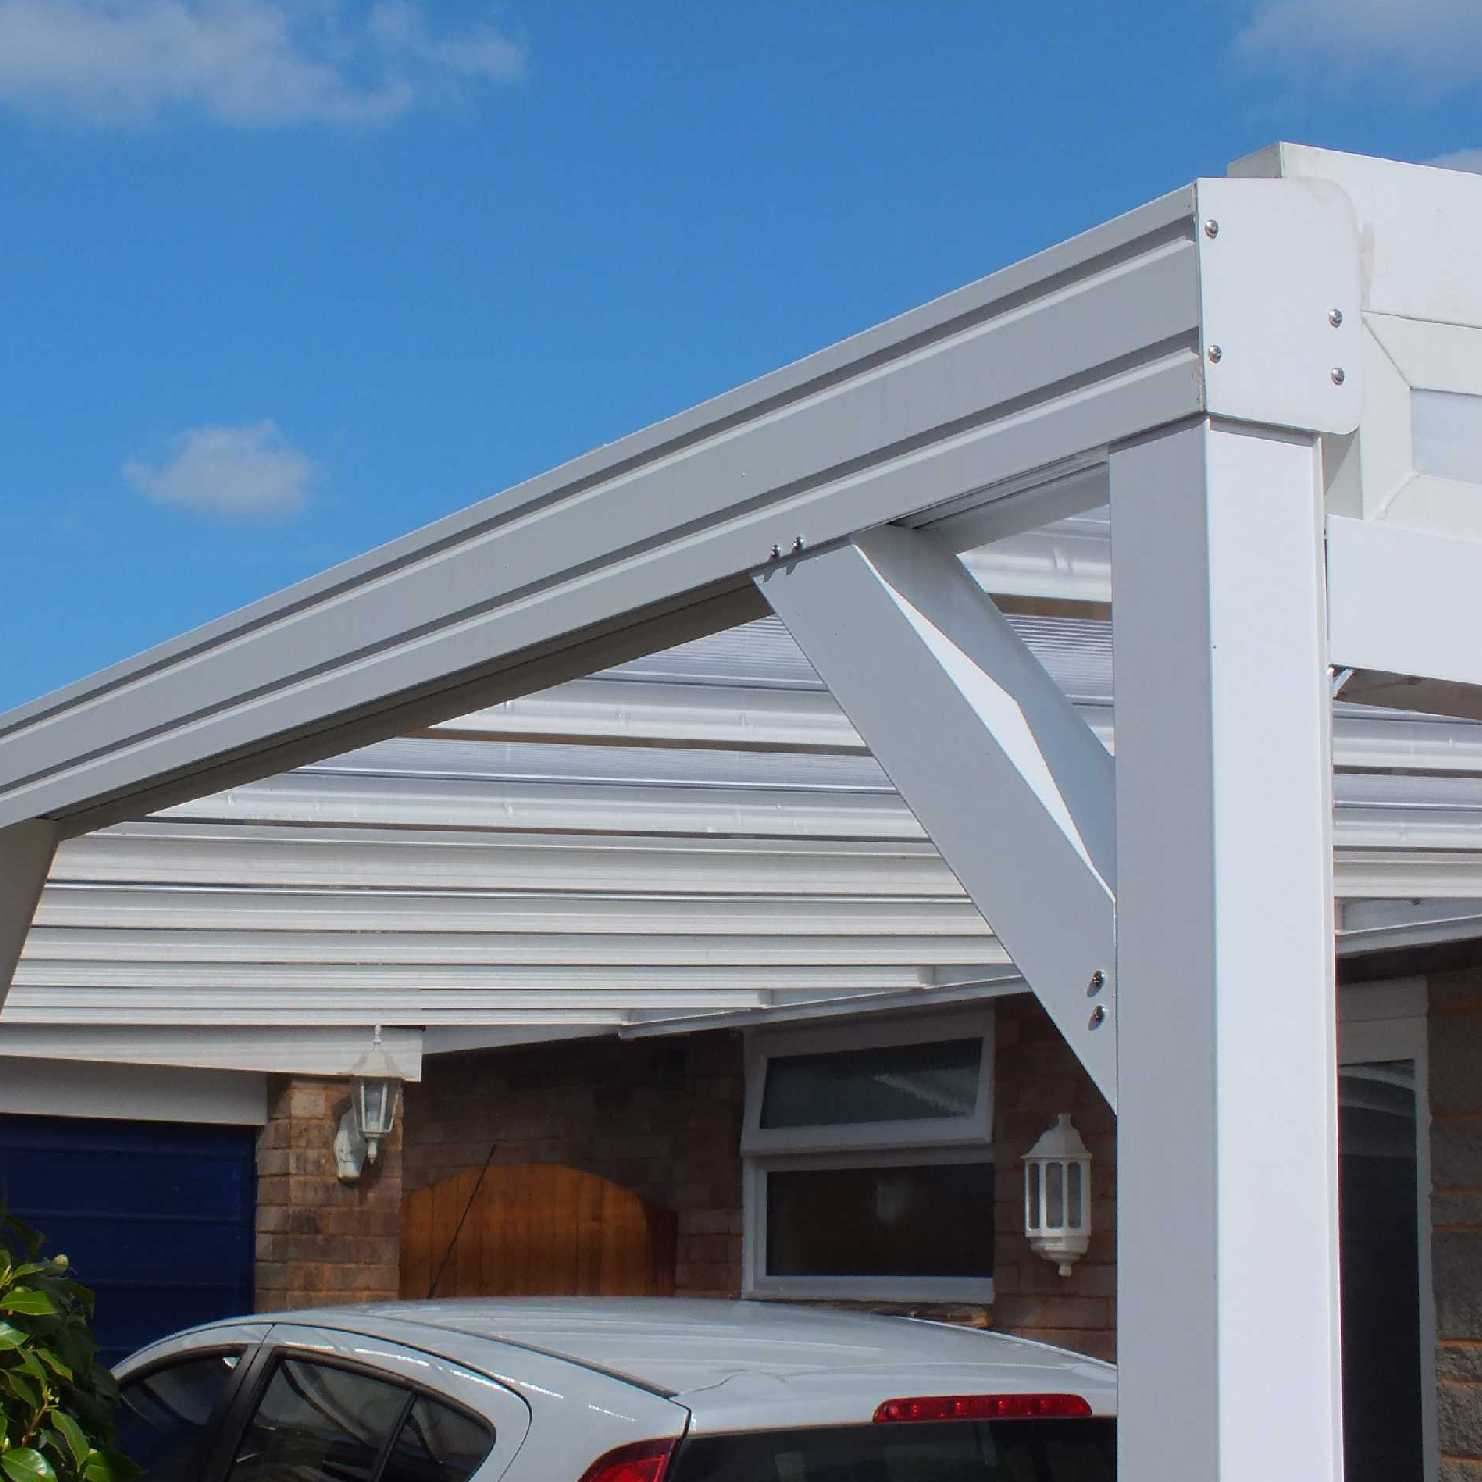 Great deals on Omega Smart White Lean-To Canopy with 16mm Polycarbonate Glazing - 7.4m (W) x 2.0m (P), (4) Supporting Posts